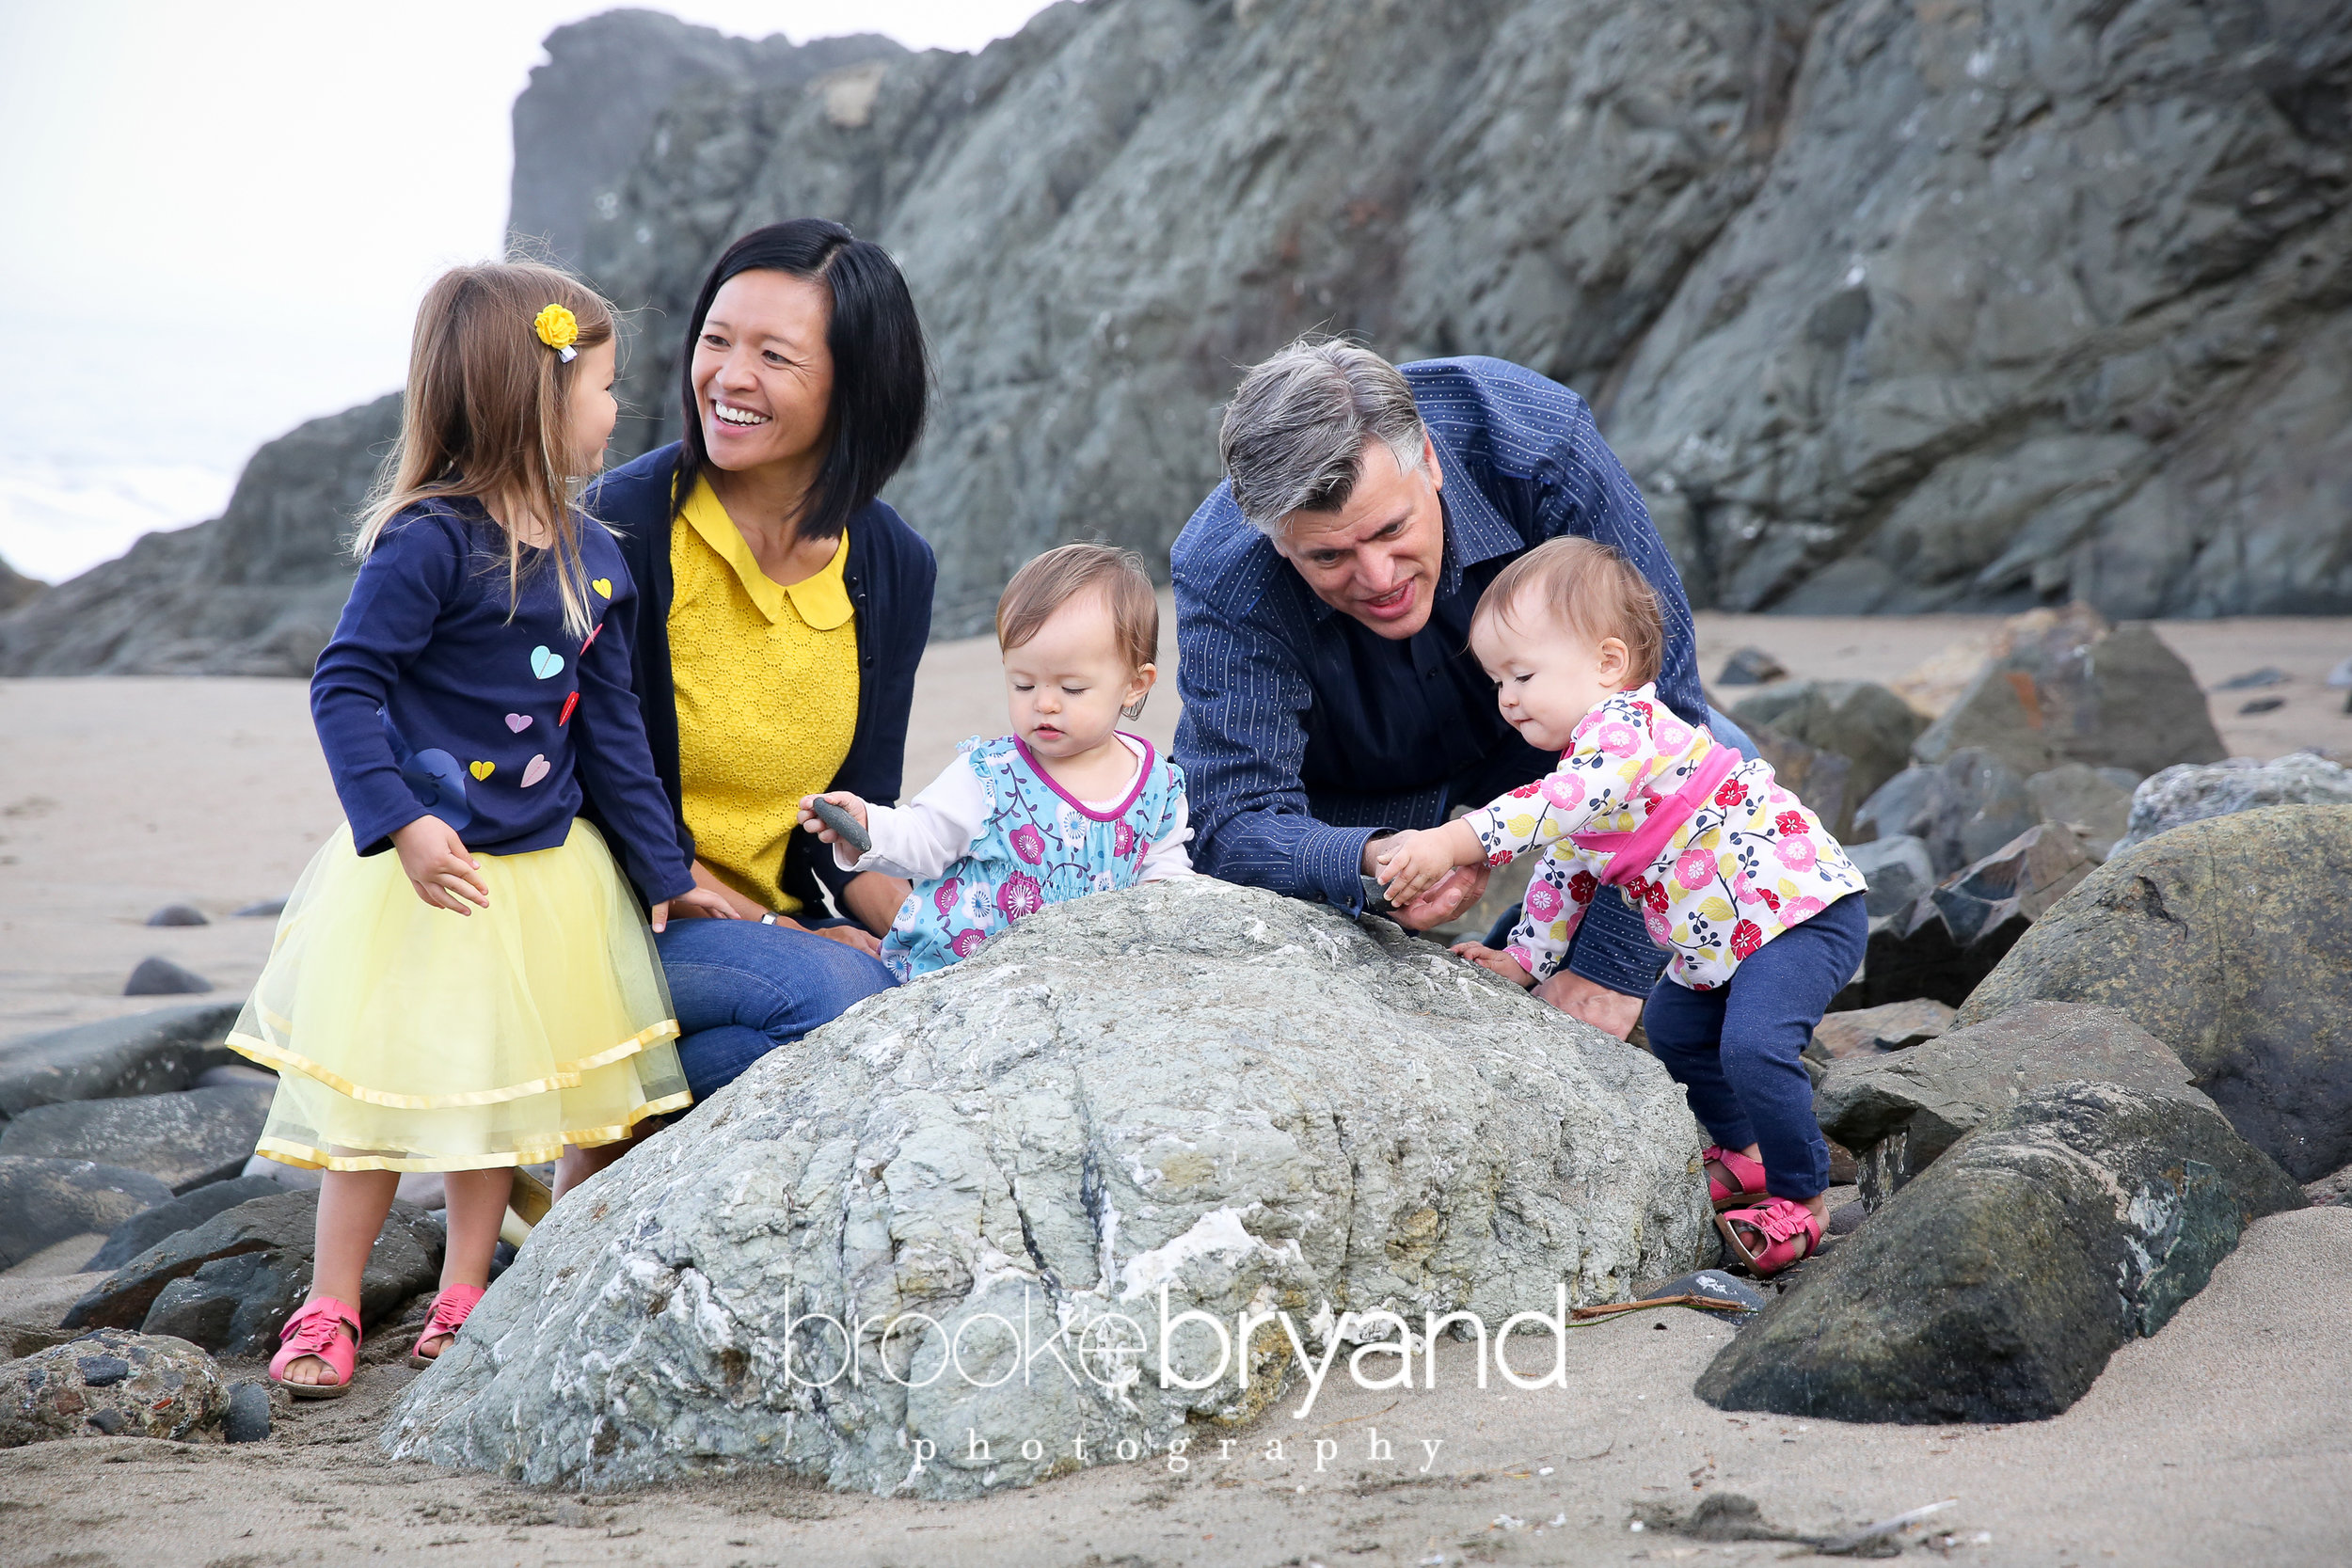 09.2013-VanderWall-San-Francisco-Family-Photographer-Brooke-Bryand-Photography-China-Beach-Family-Photographs-BBP_4686.jpg